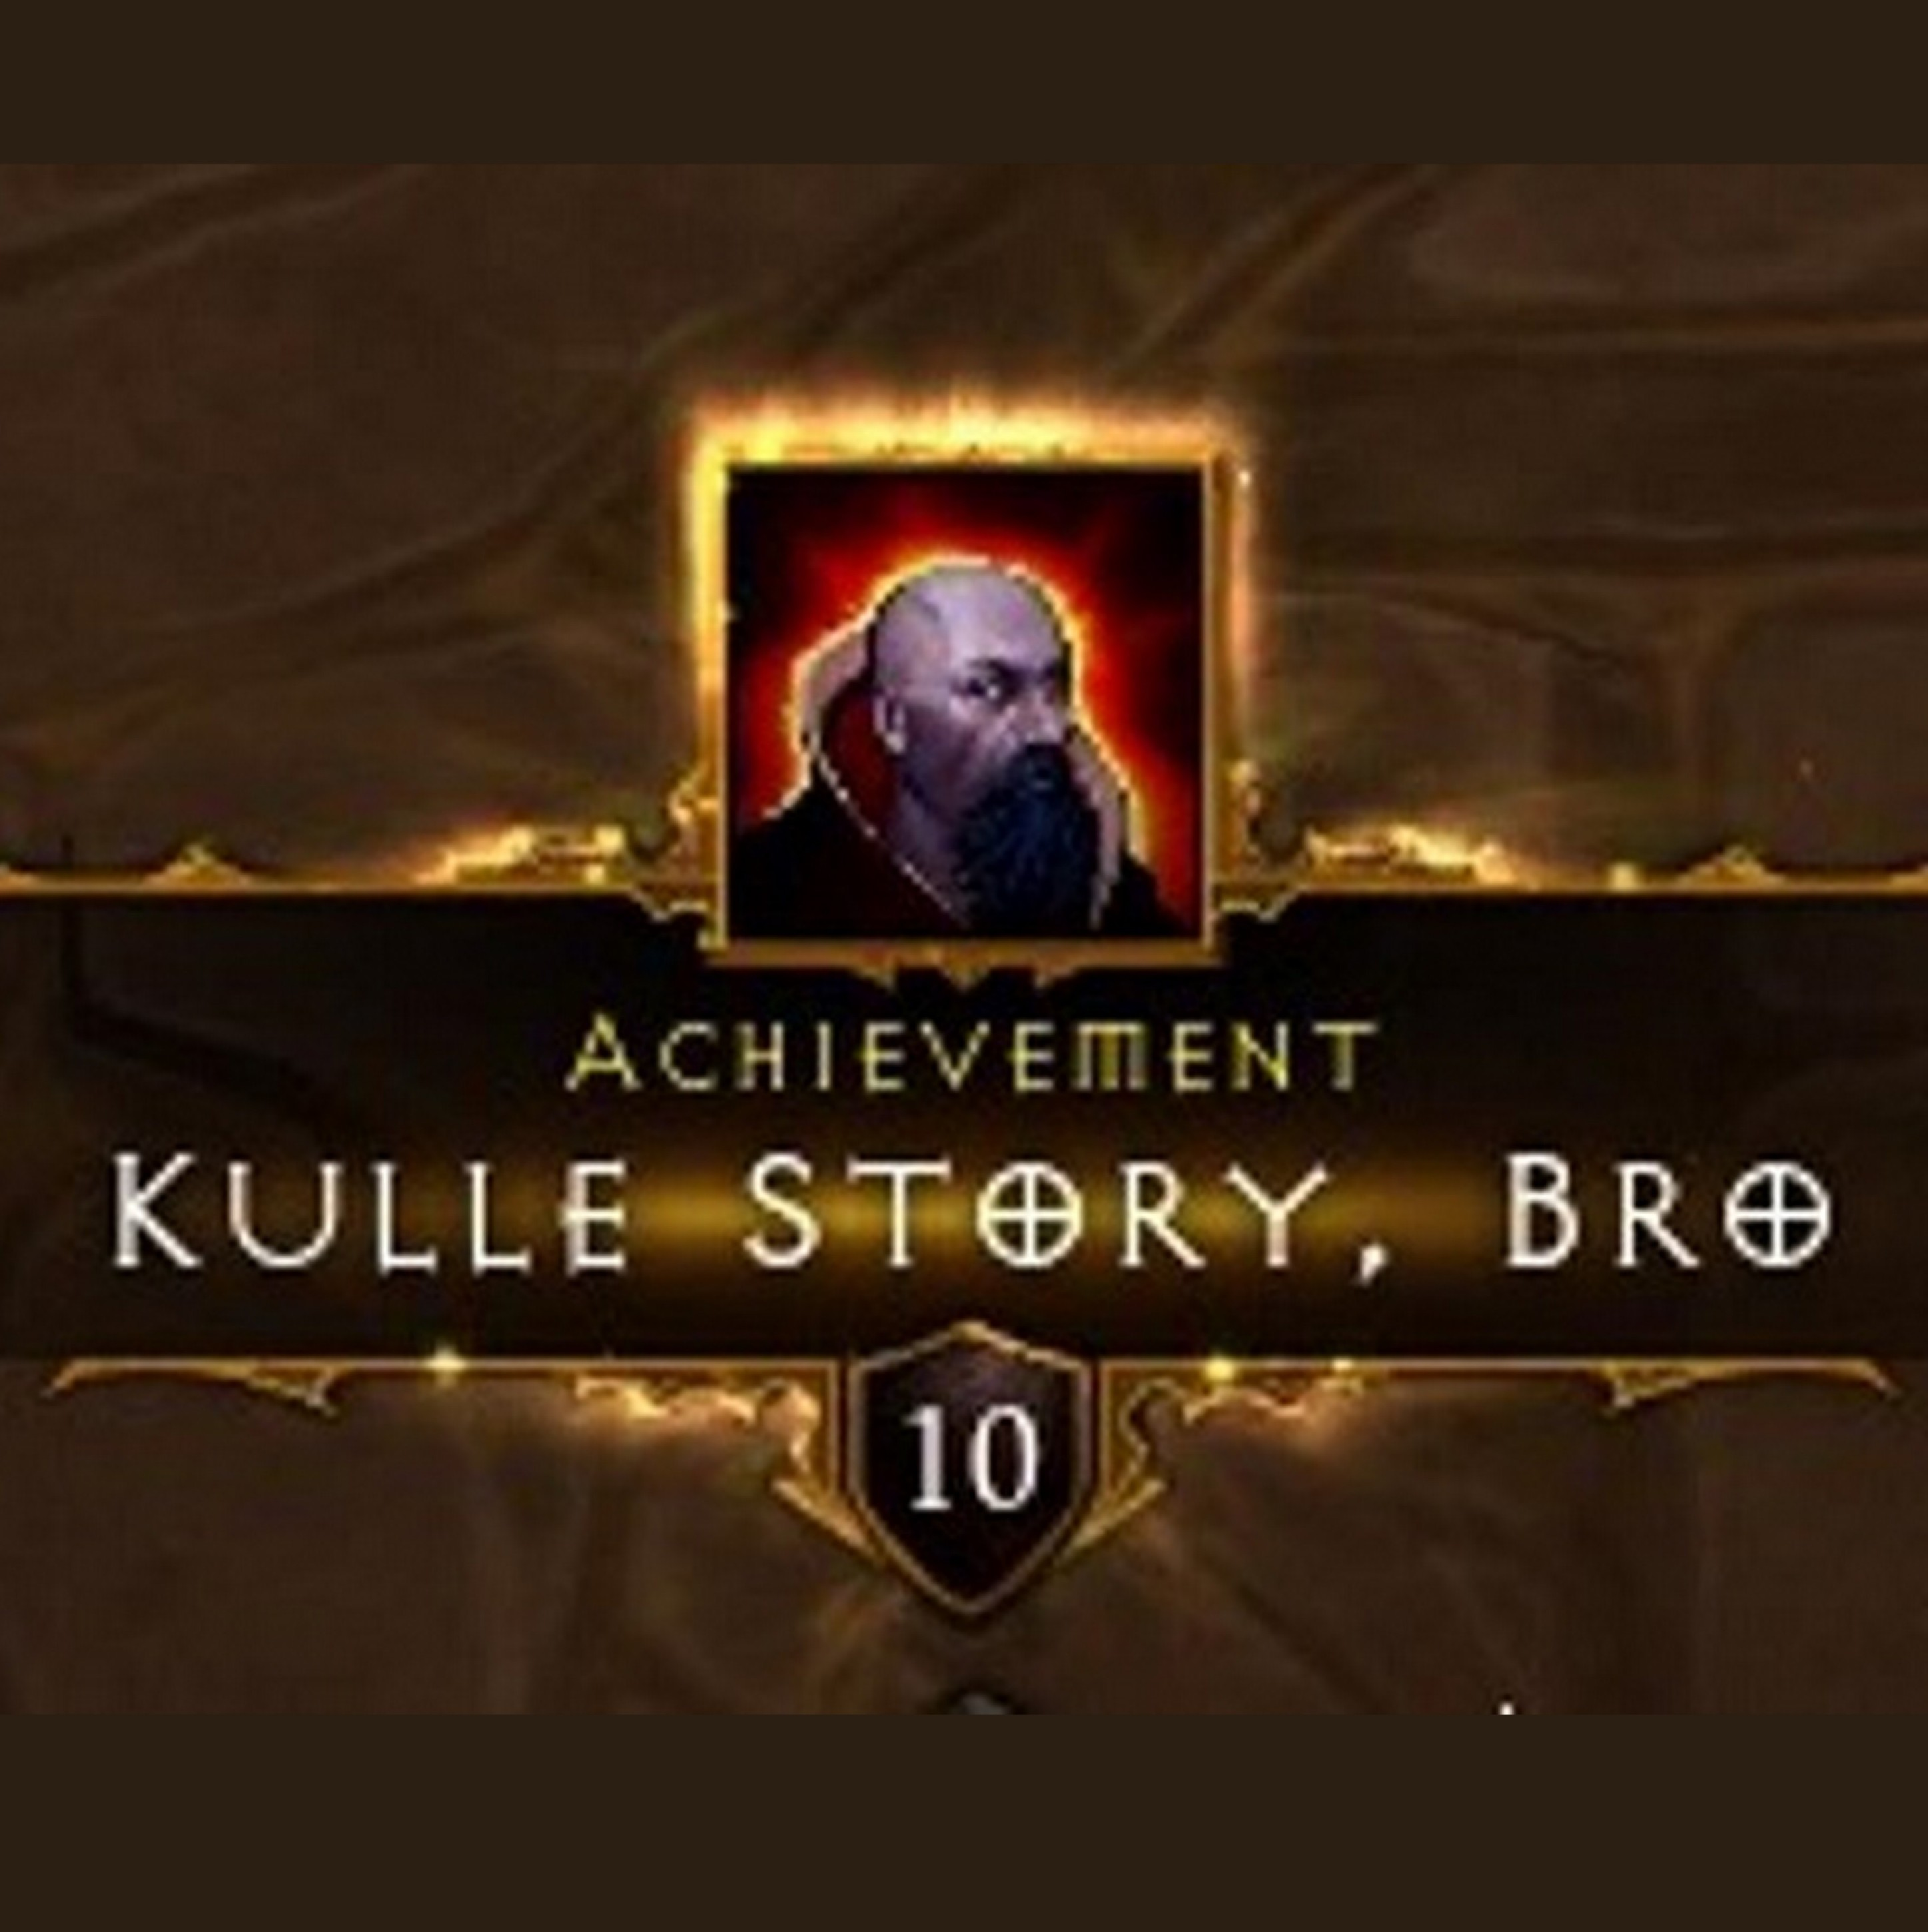 Kulle Story Bro - A Diablo 3 Podcast Episode 18